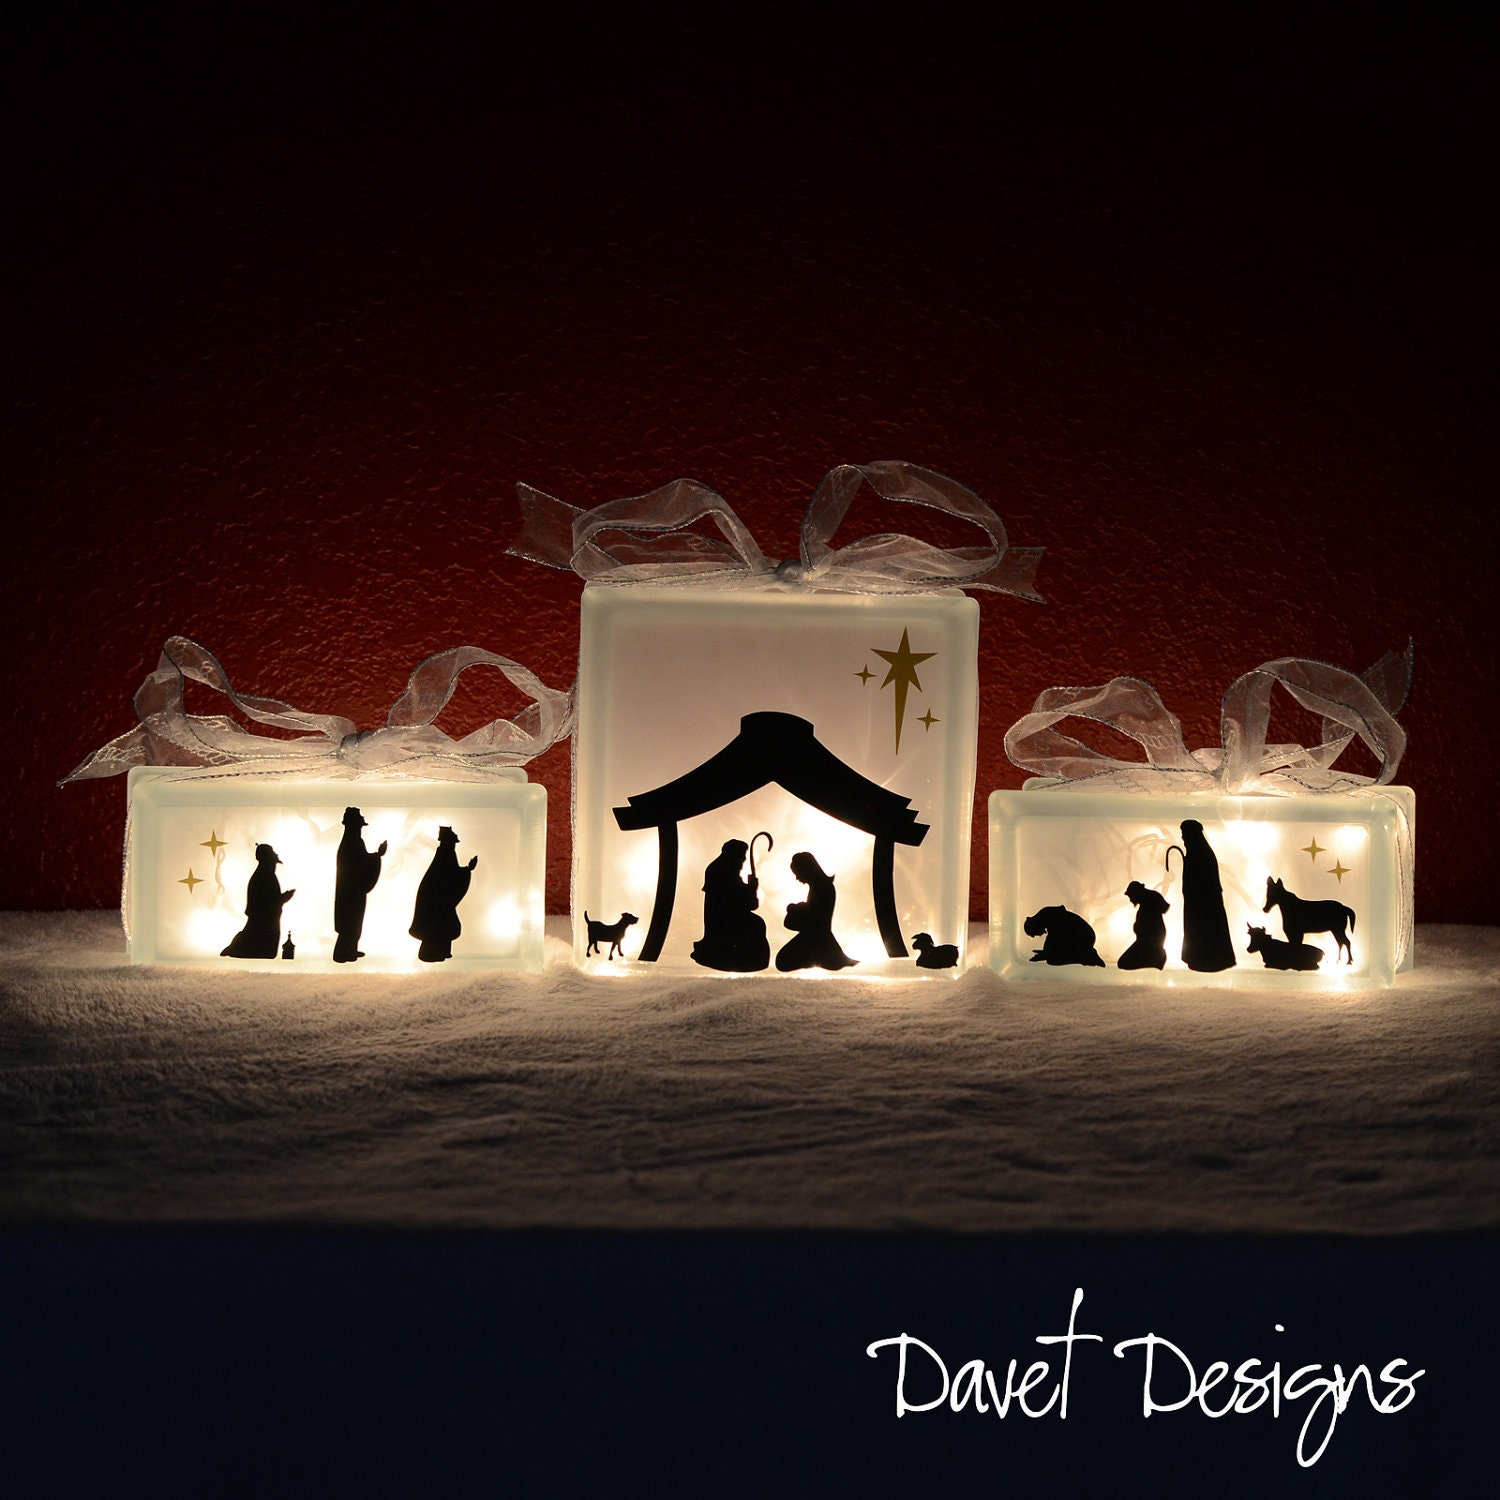 nativity scene vinyl lettering fits perfect on 8x8 inch